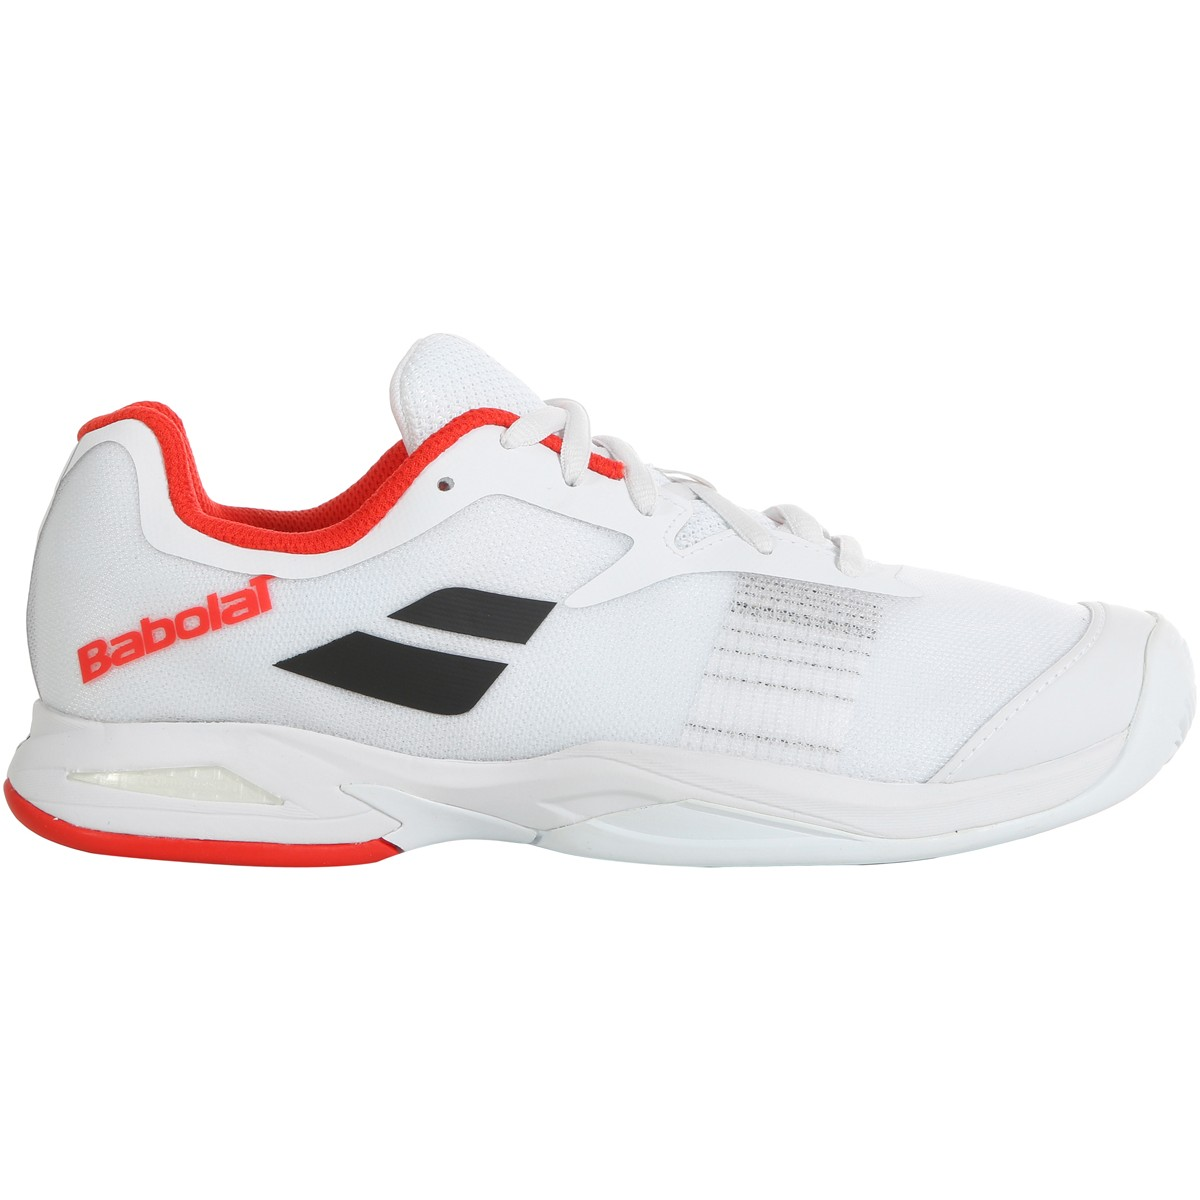 CHAUSSURES BABOLAT JUNIOR JET ALL TERRE BATTUE